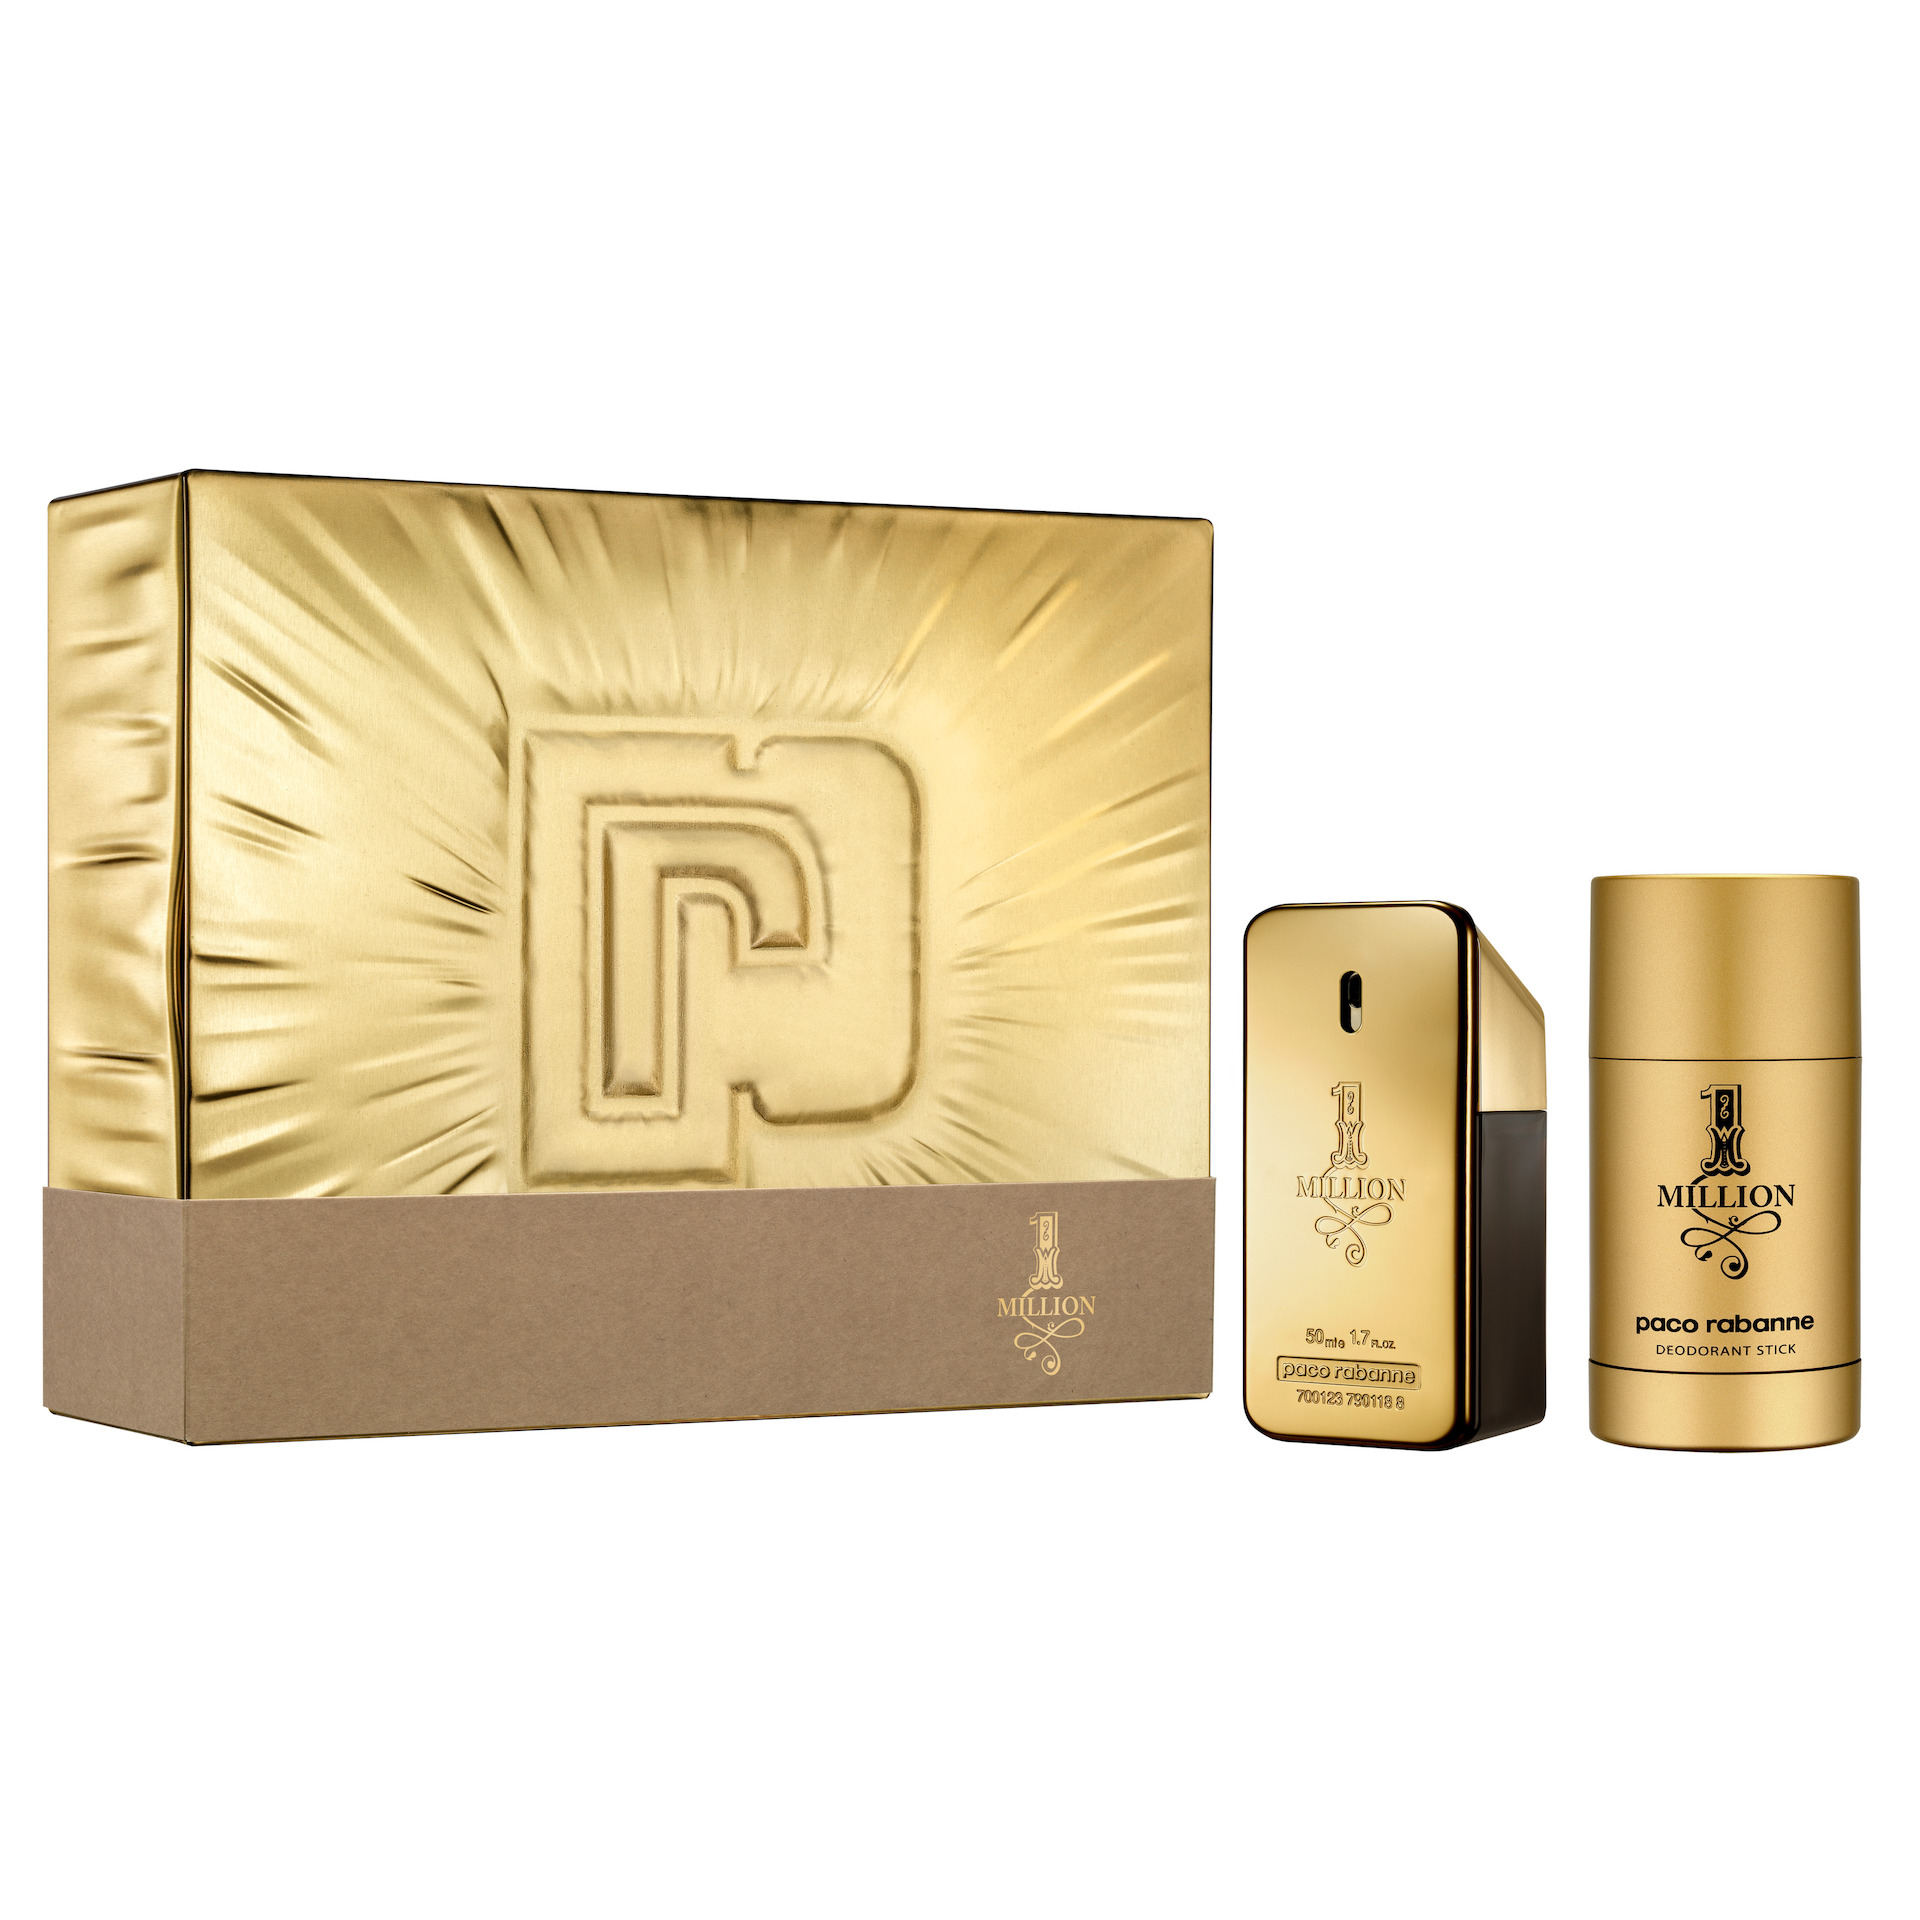 1 Million Parfum 100 ml Paco Rabanne KICKS